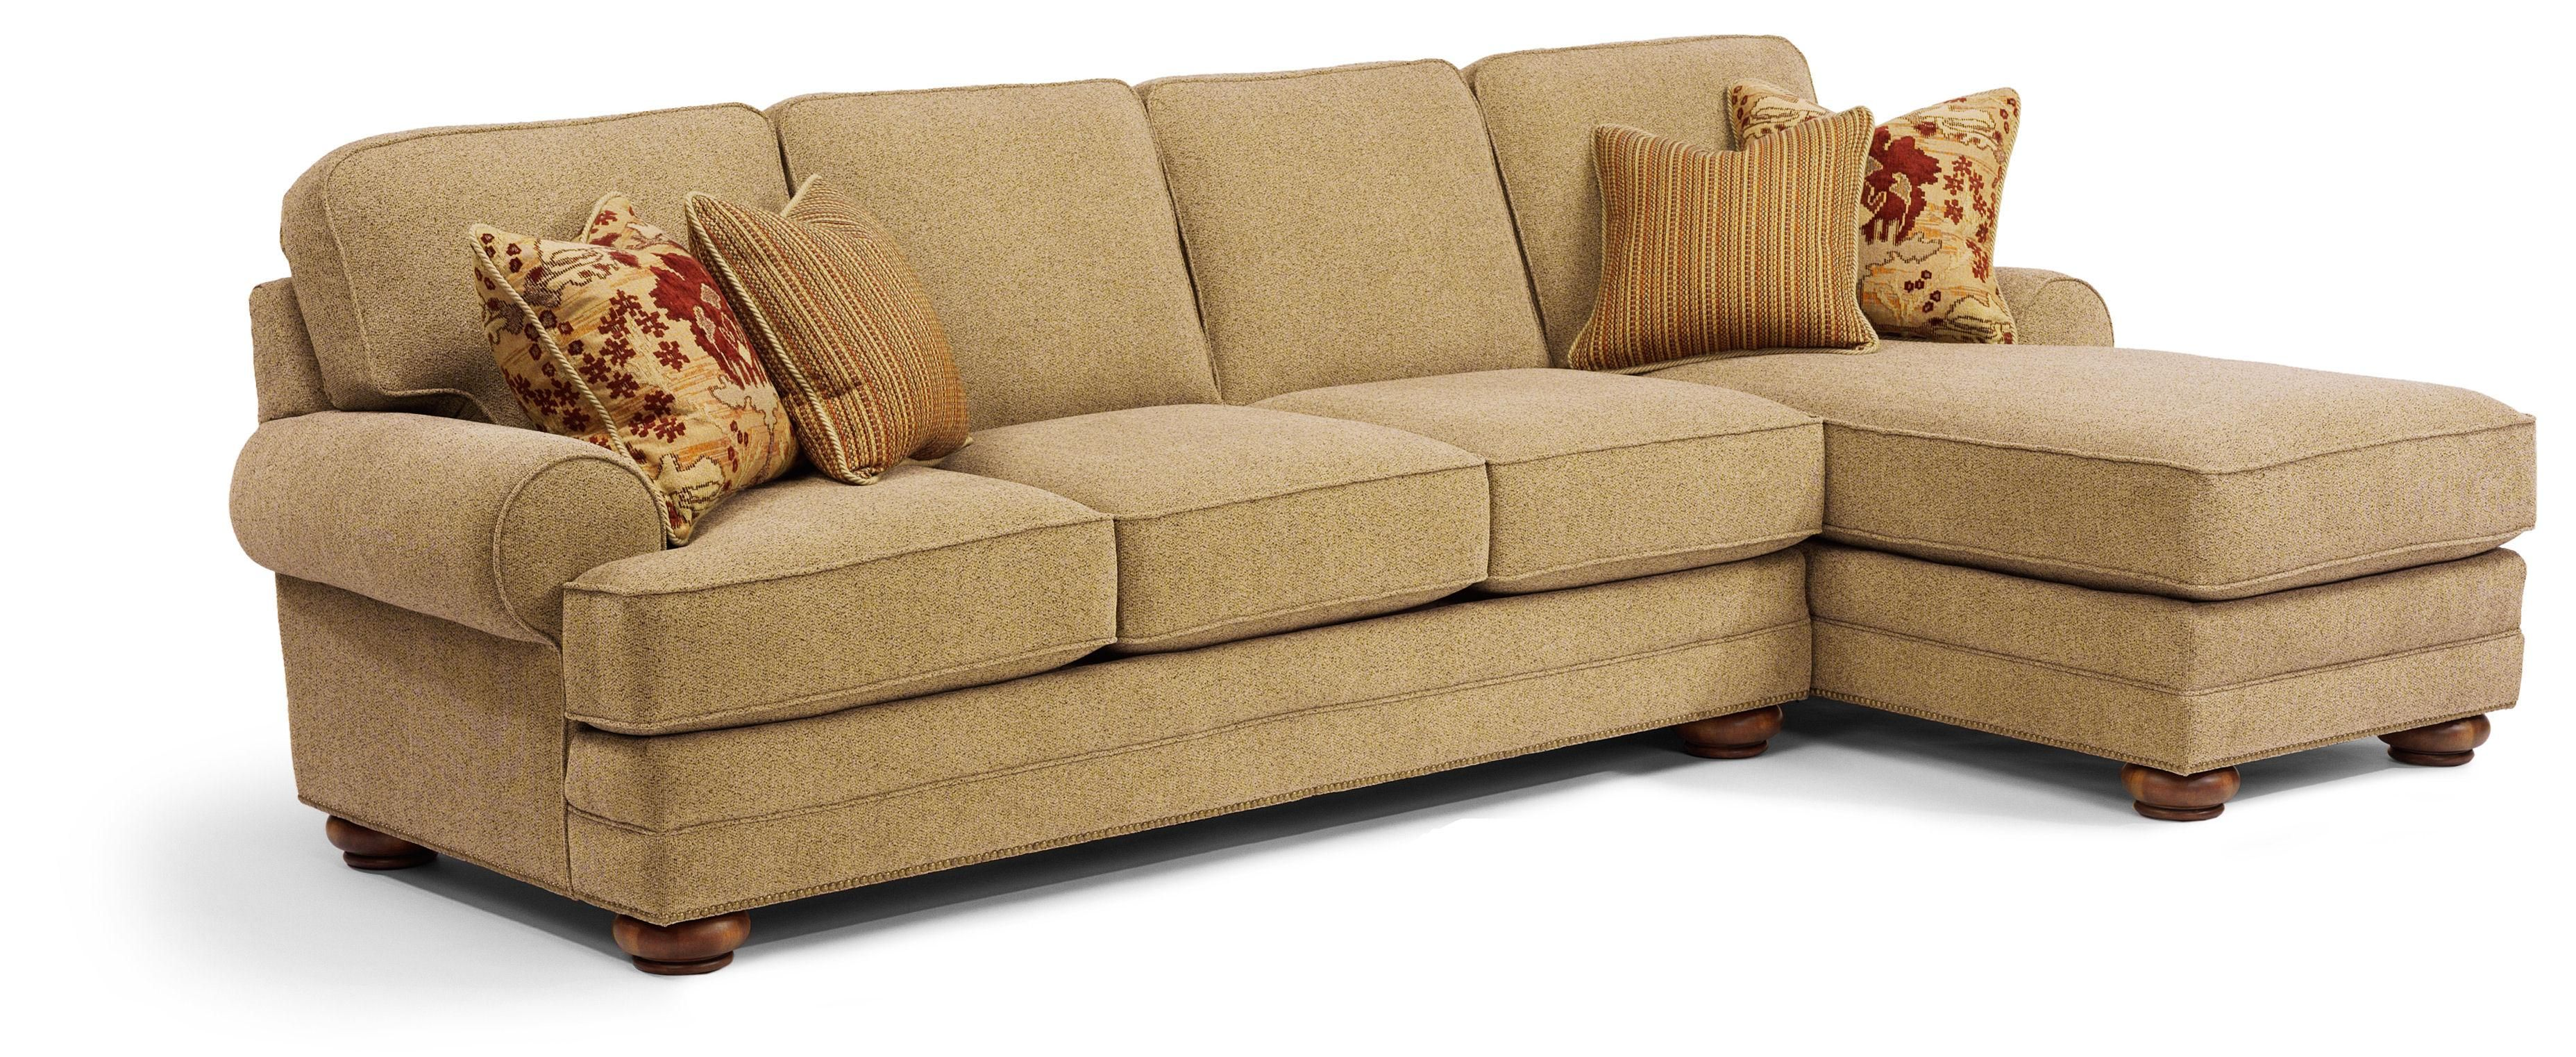 Customize this sectional sofa with our wide range of options to